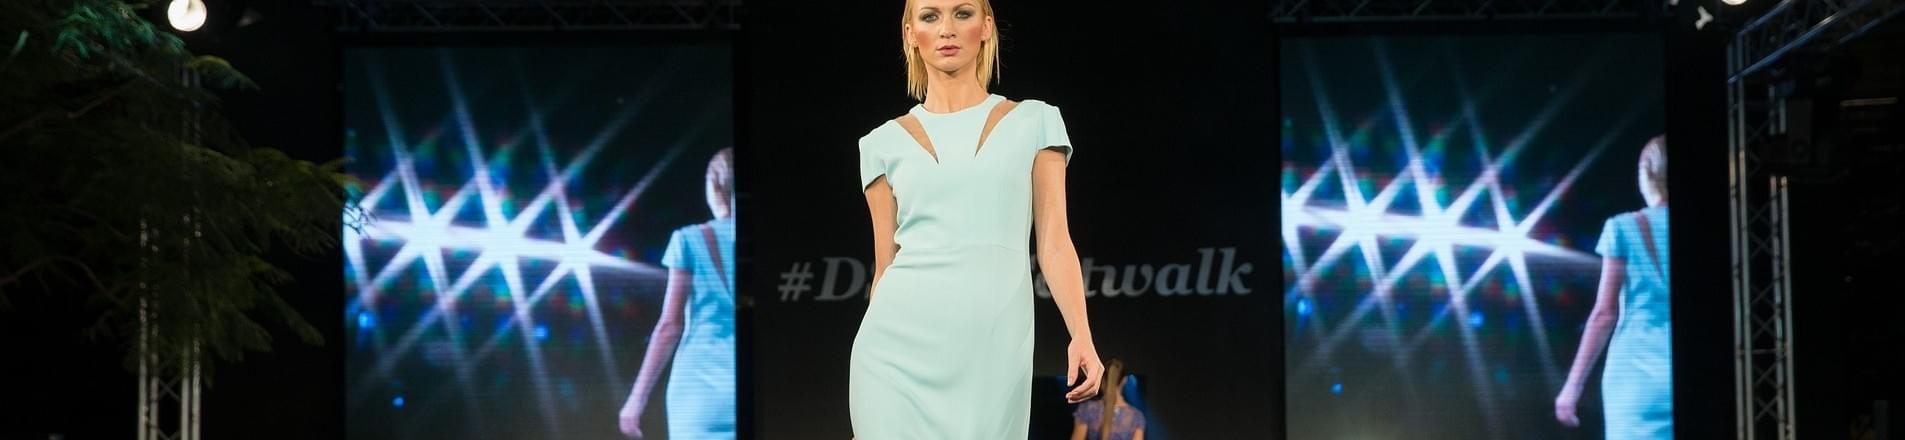 The UK's first diversity catwalk launced by Katie Piper